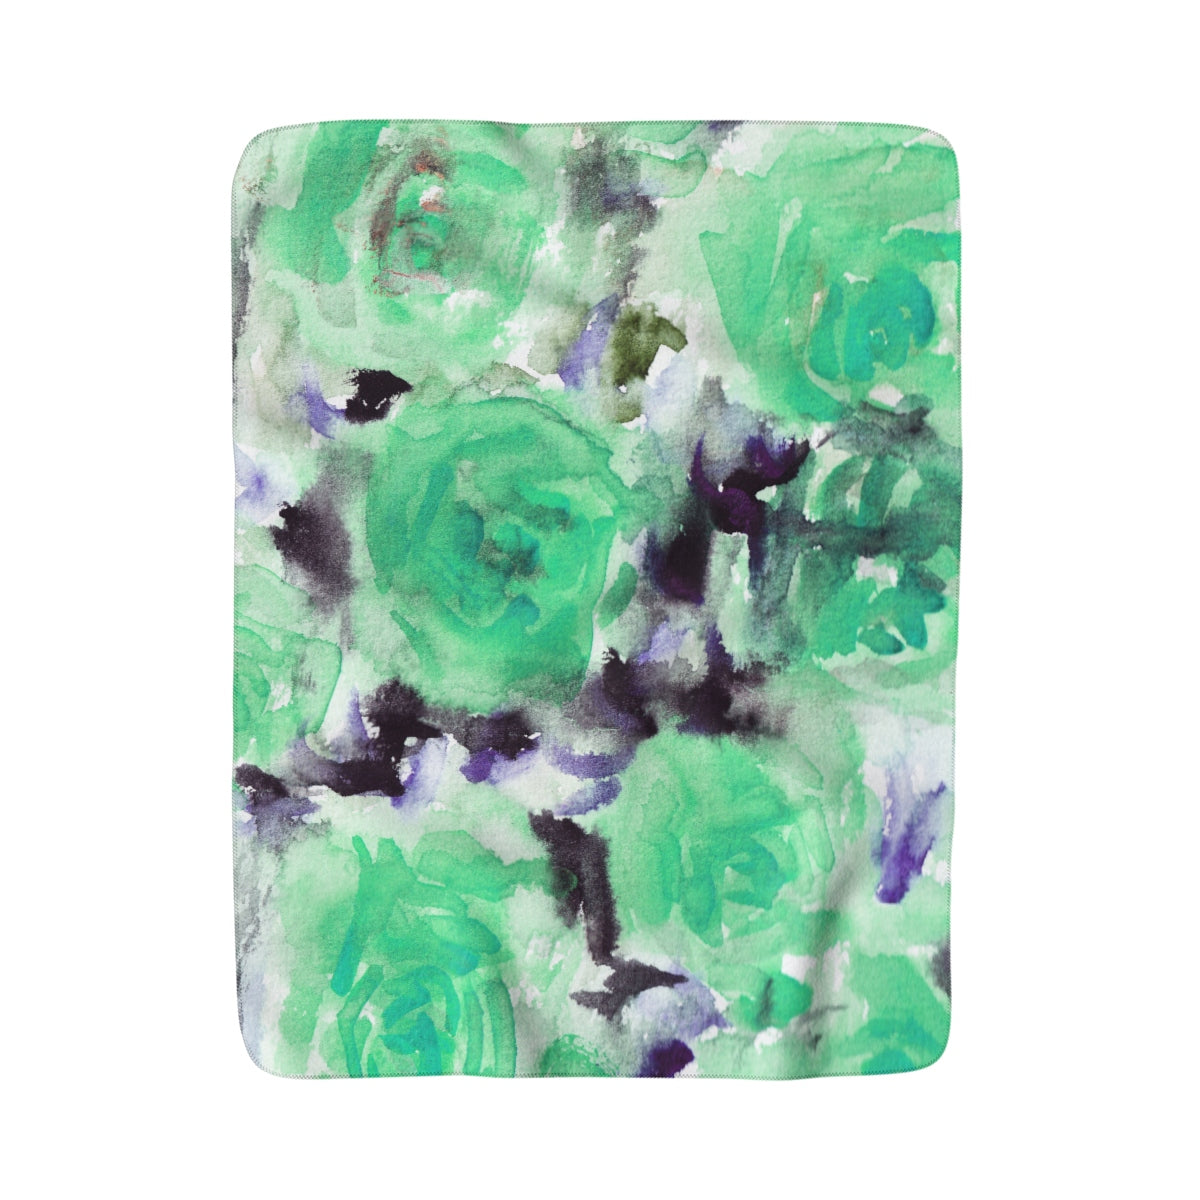 Light Blue Rose Floral Print 100% Polyester Cozy Sherpa Fleece Blanket - Made in USA-Blanket-50x60-Heidi Kimura Art LLC